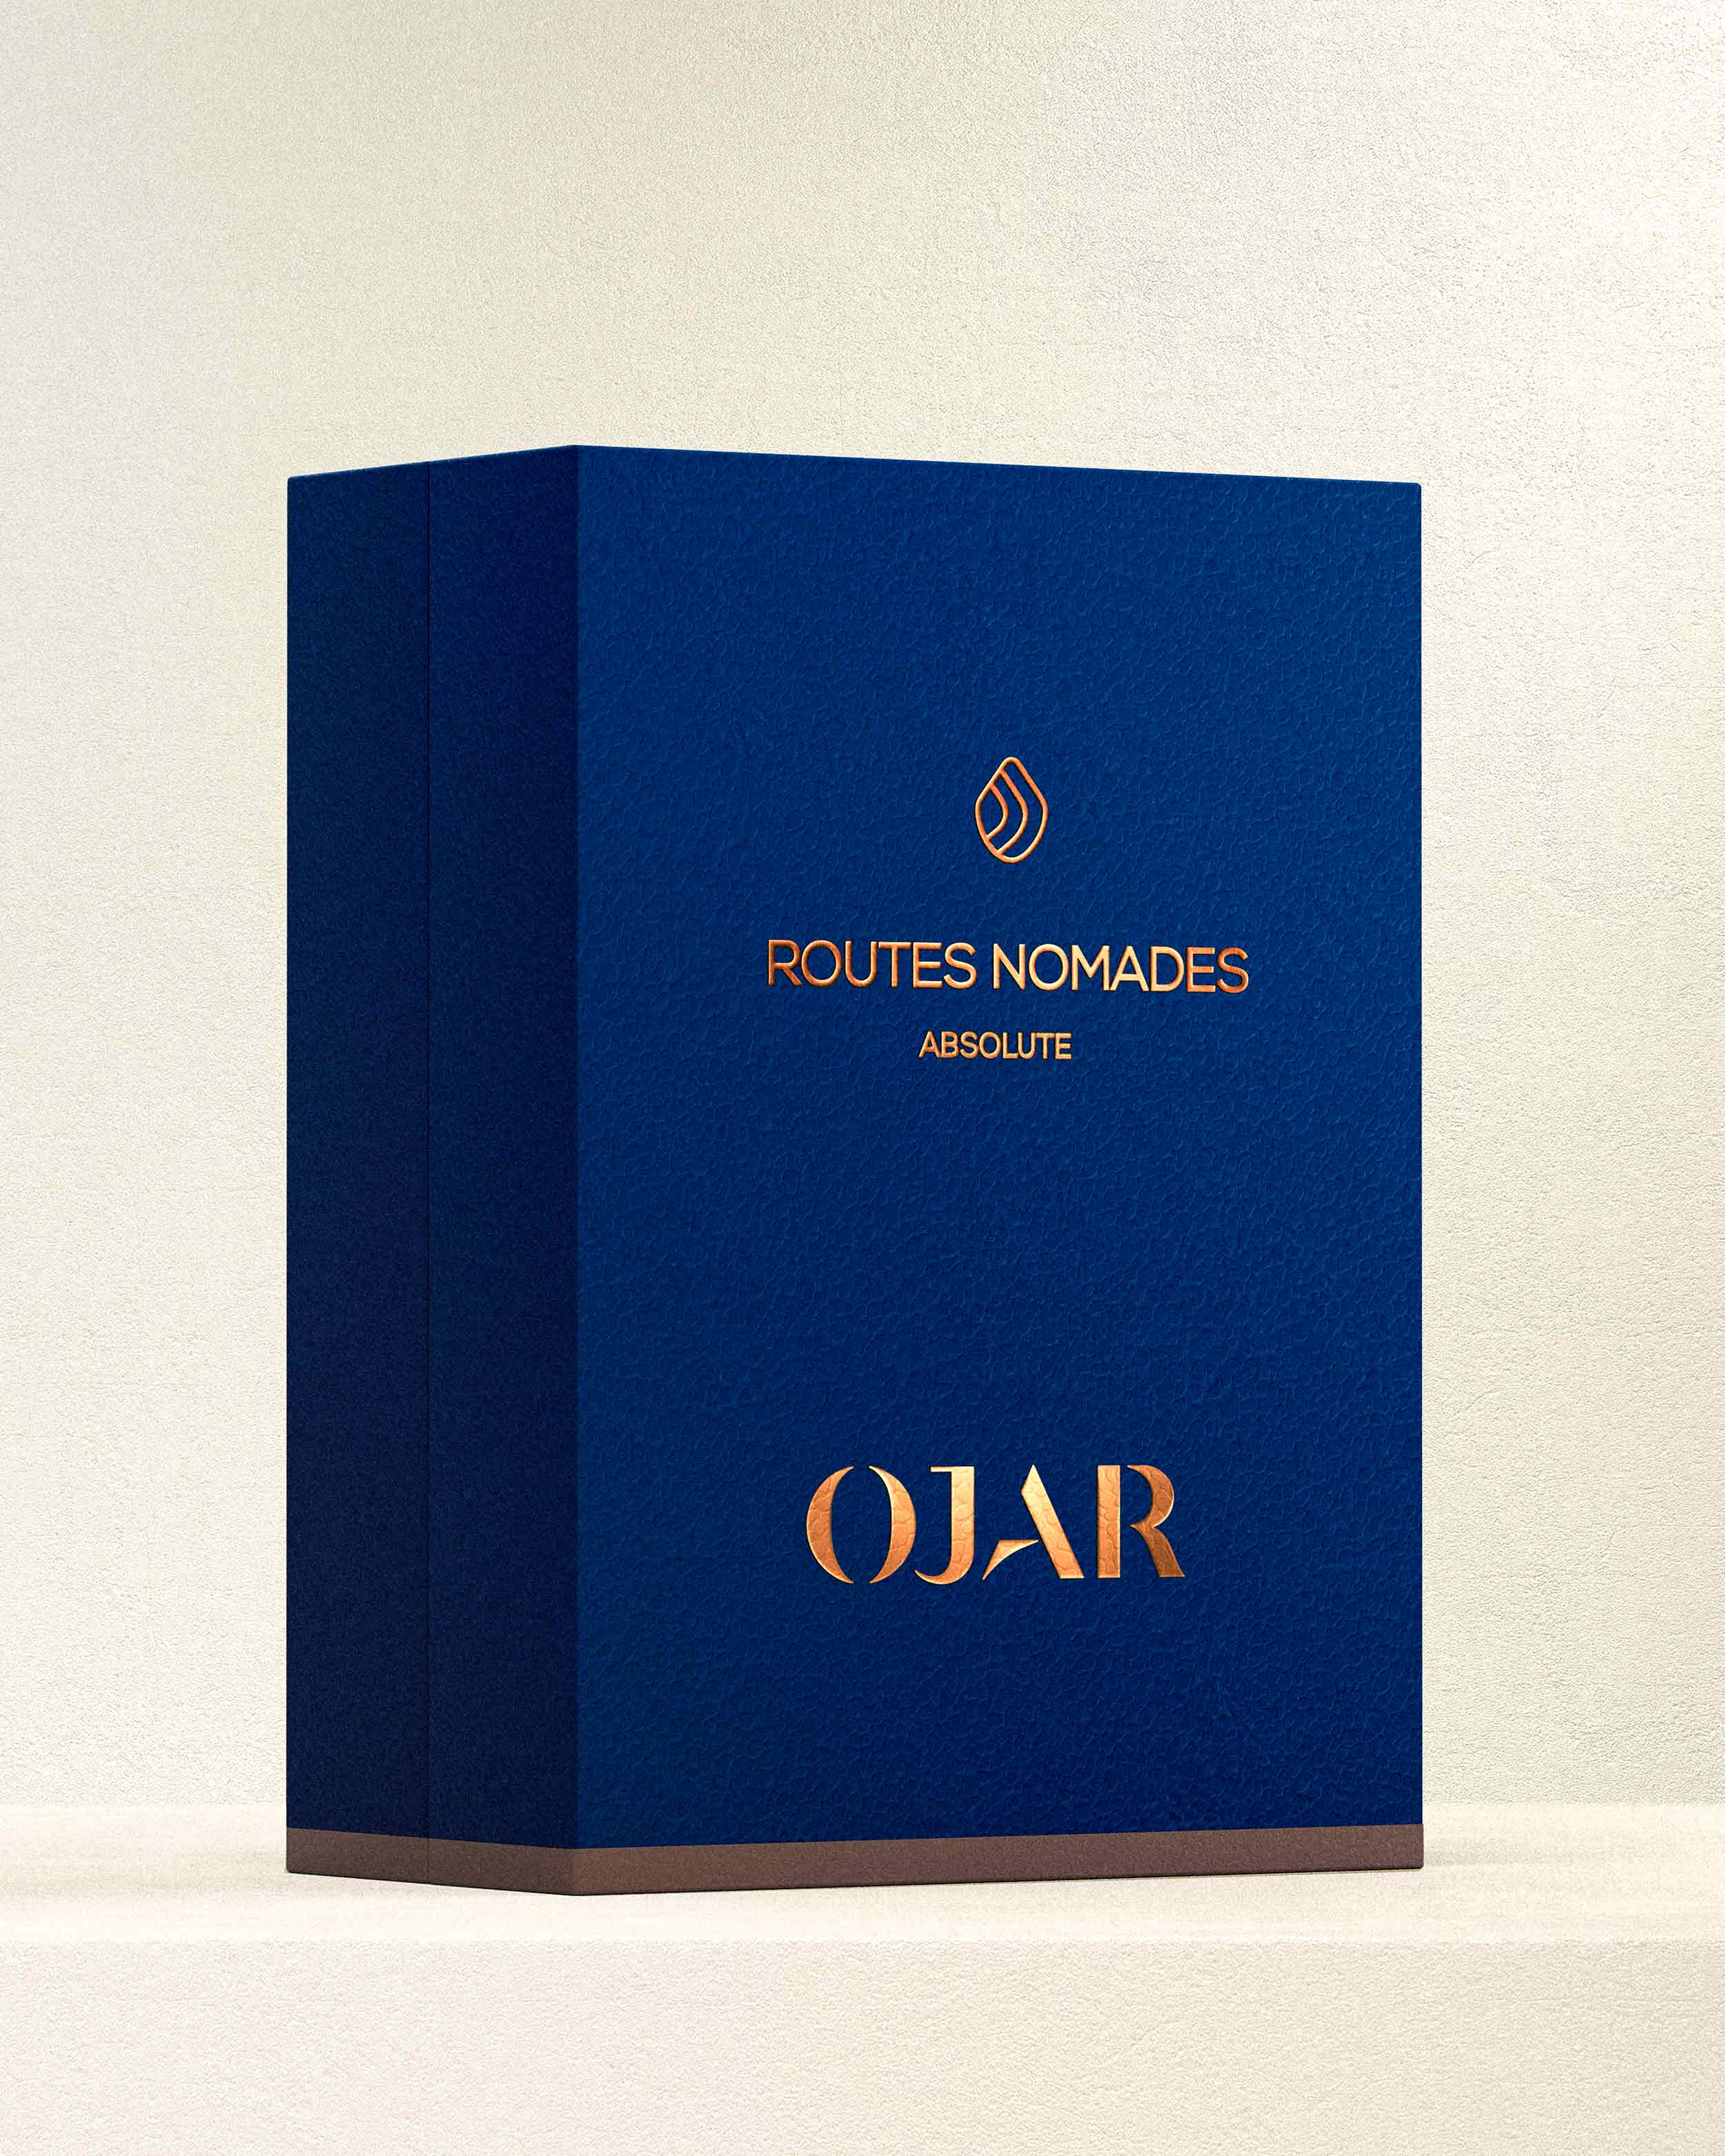 OJAR Absolute Routes Nomades Perfume Pack